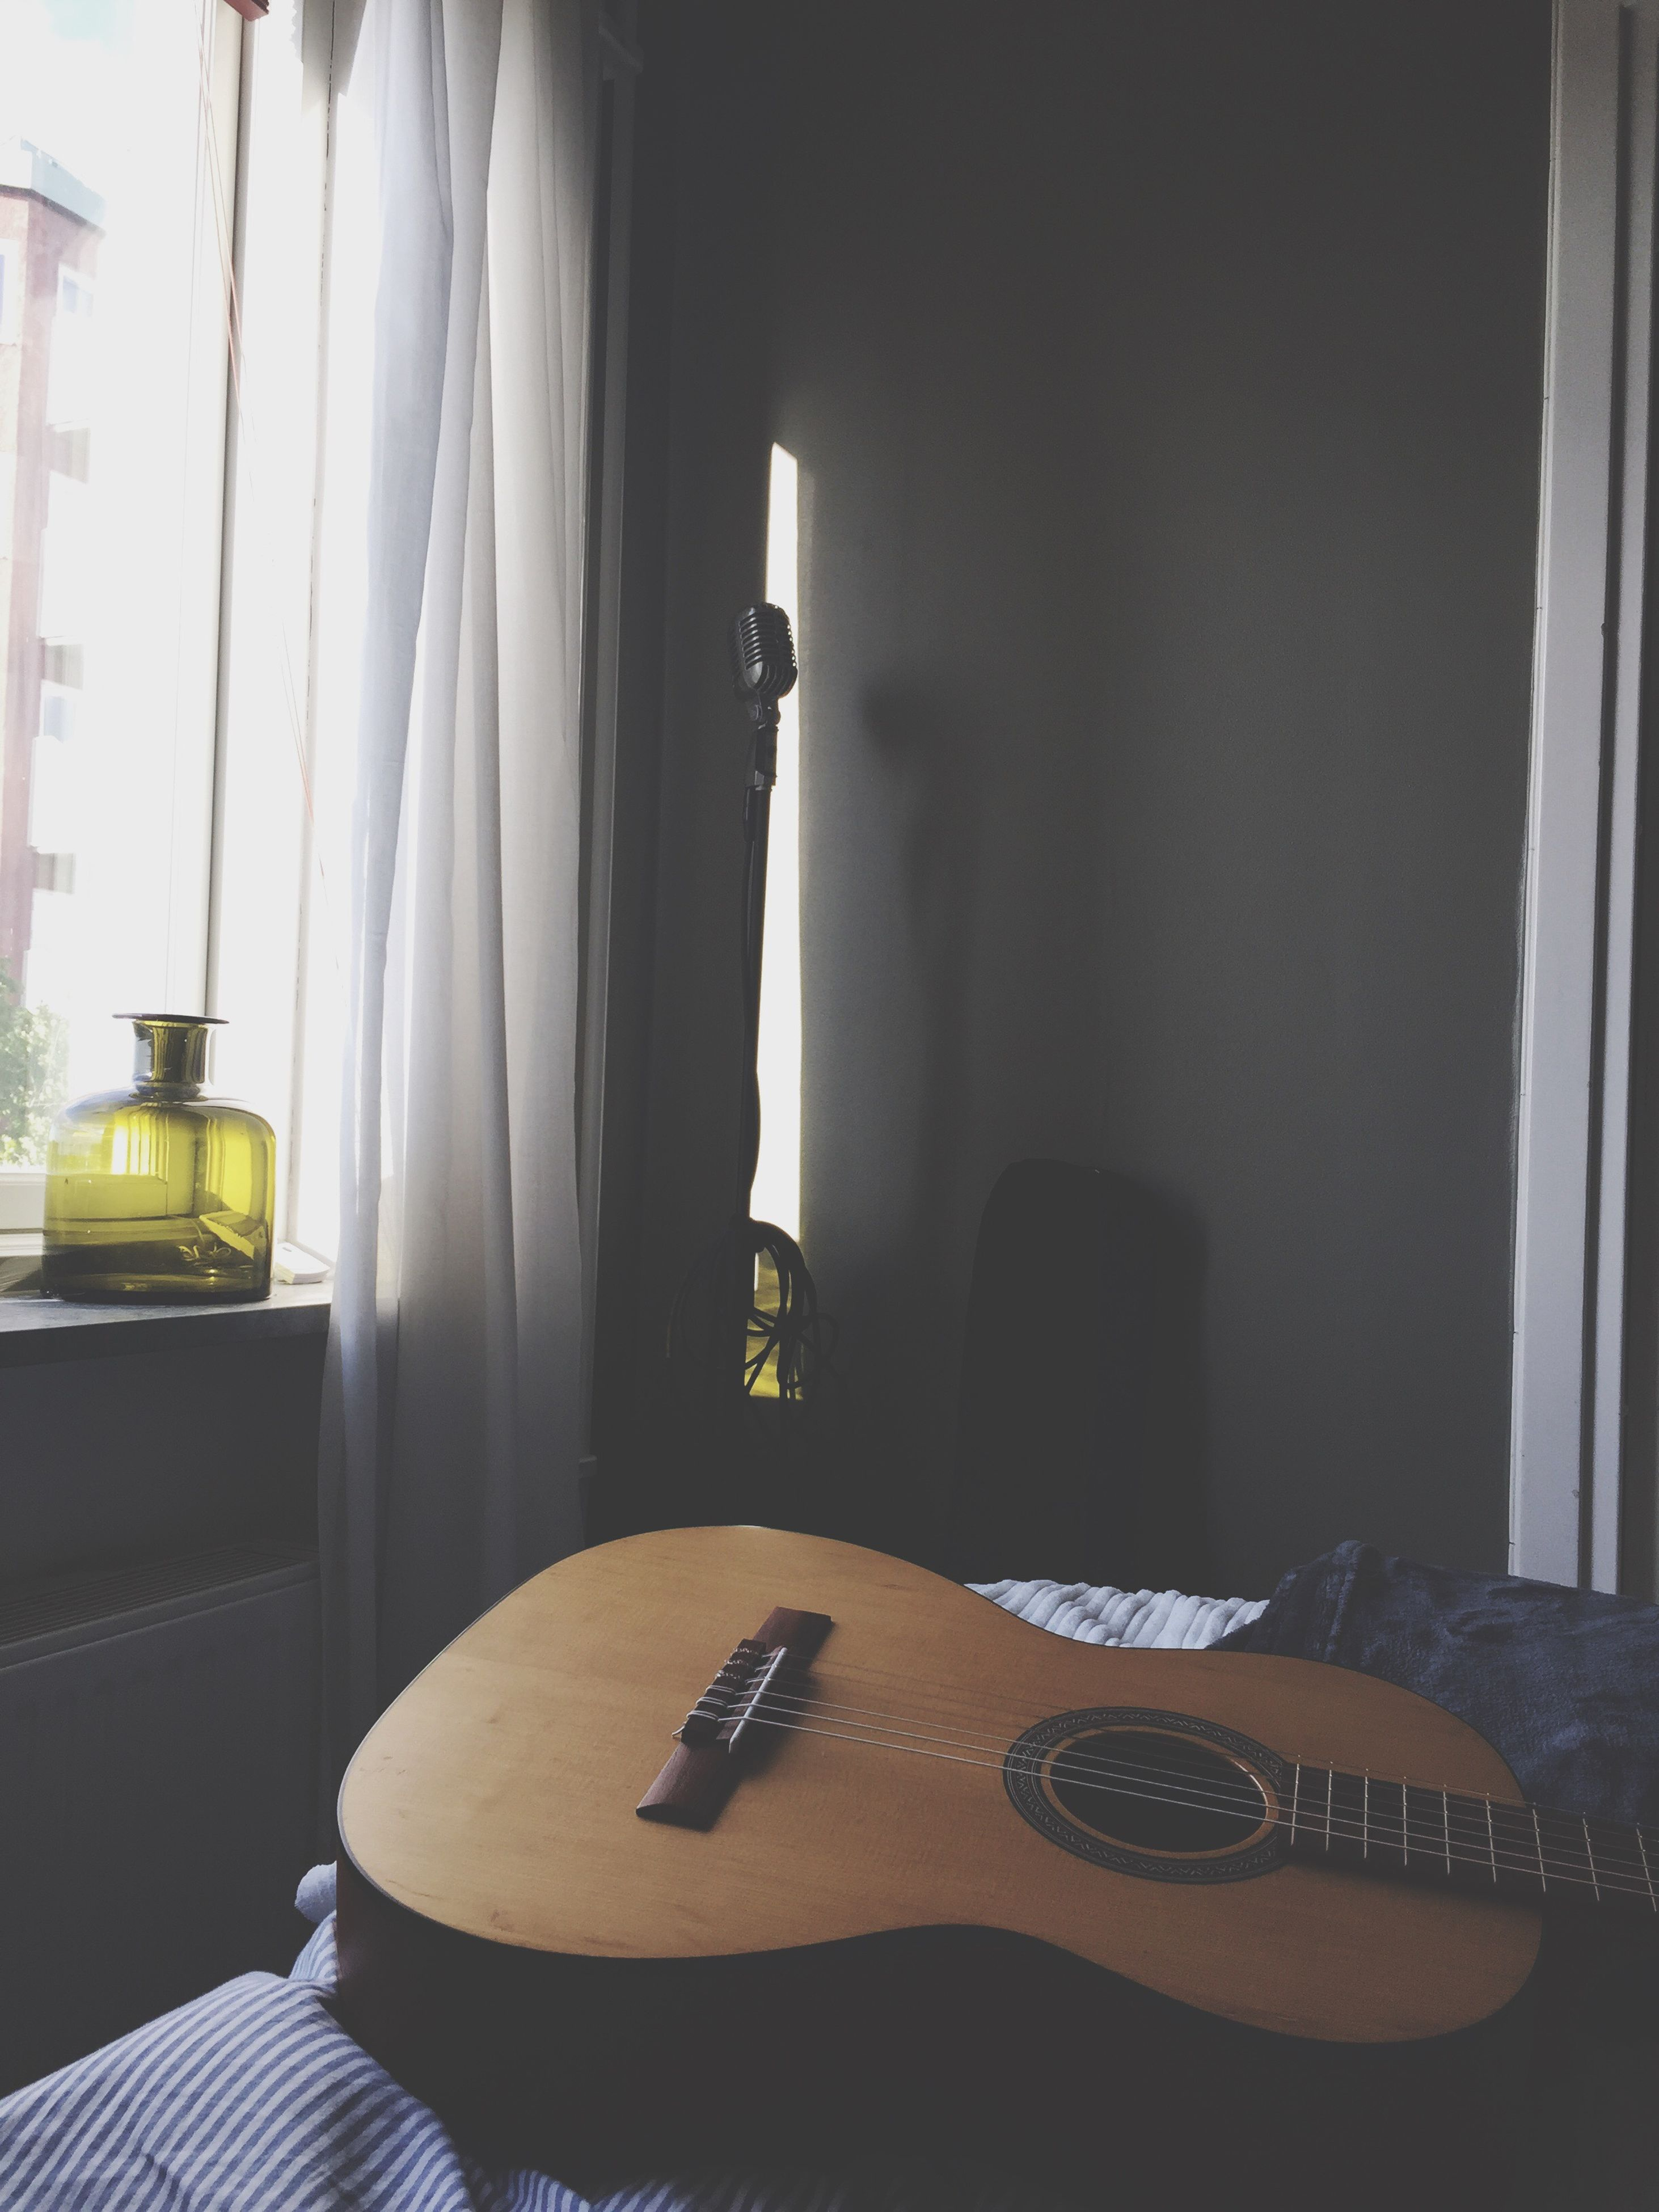 indoors, table, home interior, window, no people, day, technology, guitar